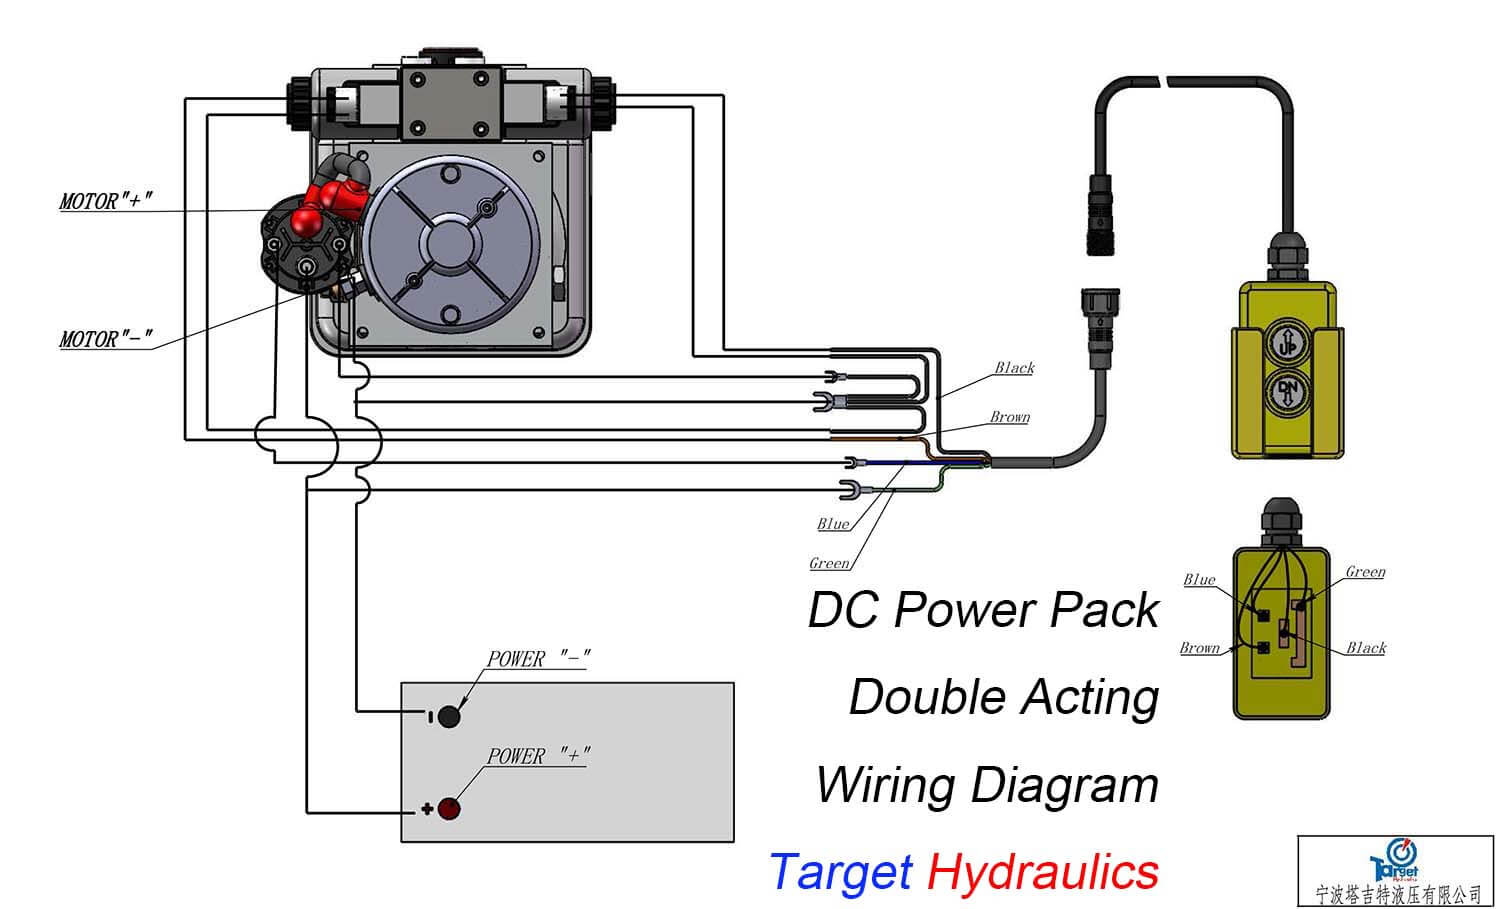 How to Wire_DC Motor Double Acting Power Pack how to wire hydraulic power pack,power unit diagram design Residential Electrical Wiring Diagrams at eliteediting.co